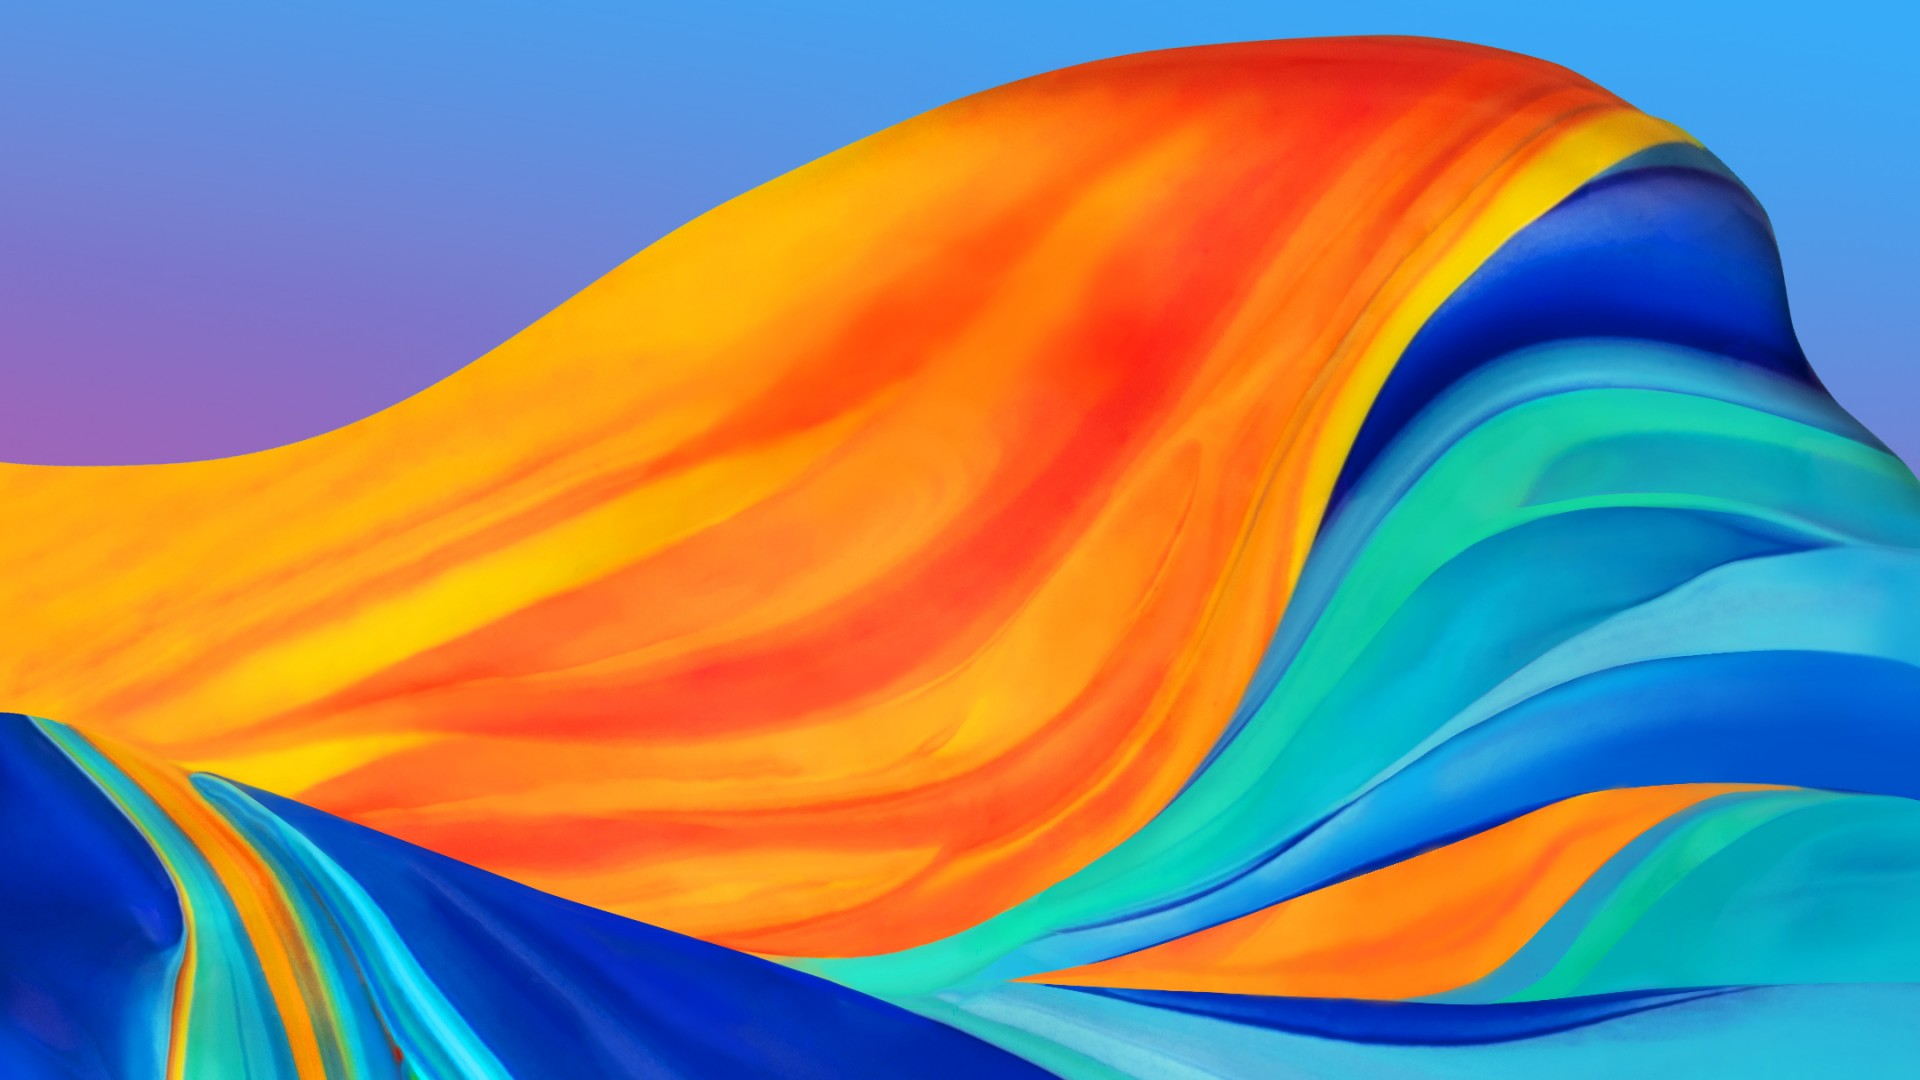 Wallpaper Abstract Huawei Matebook E 2019 Hd Os 21829